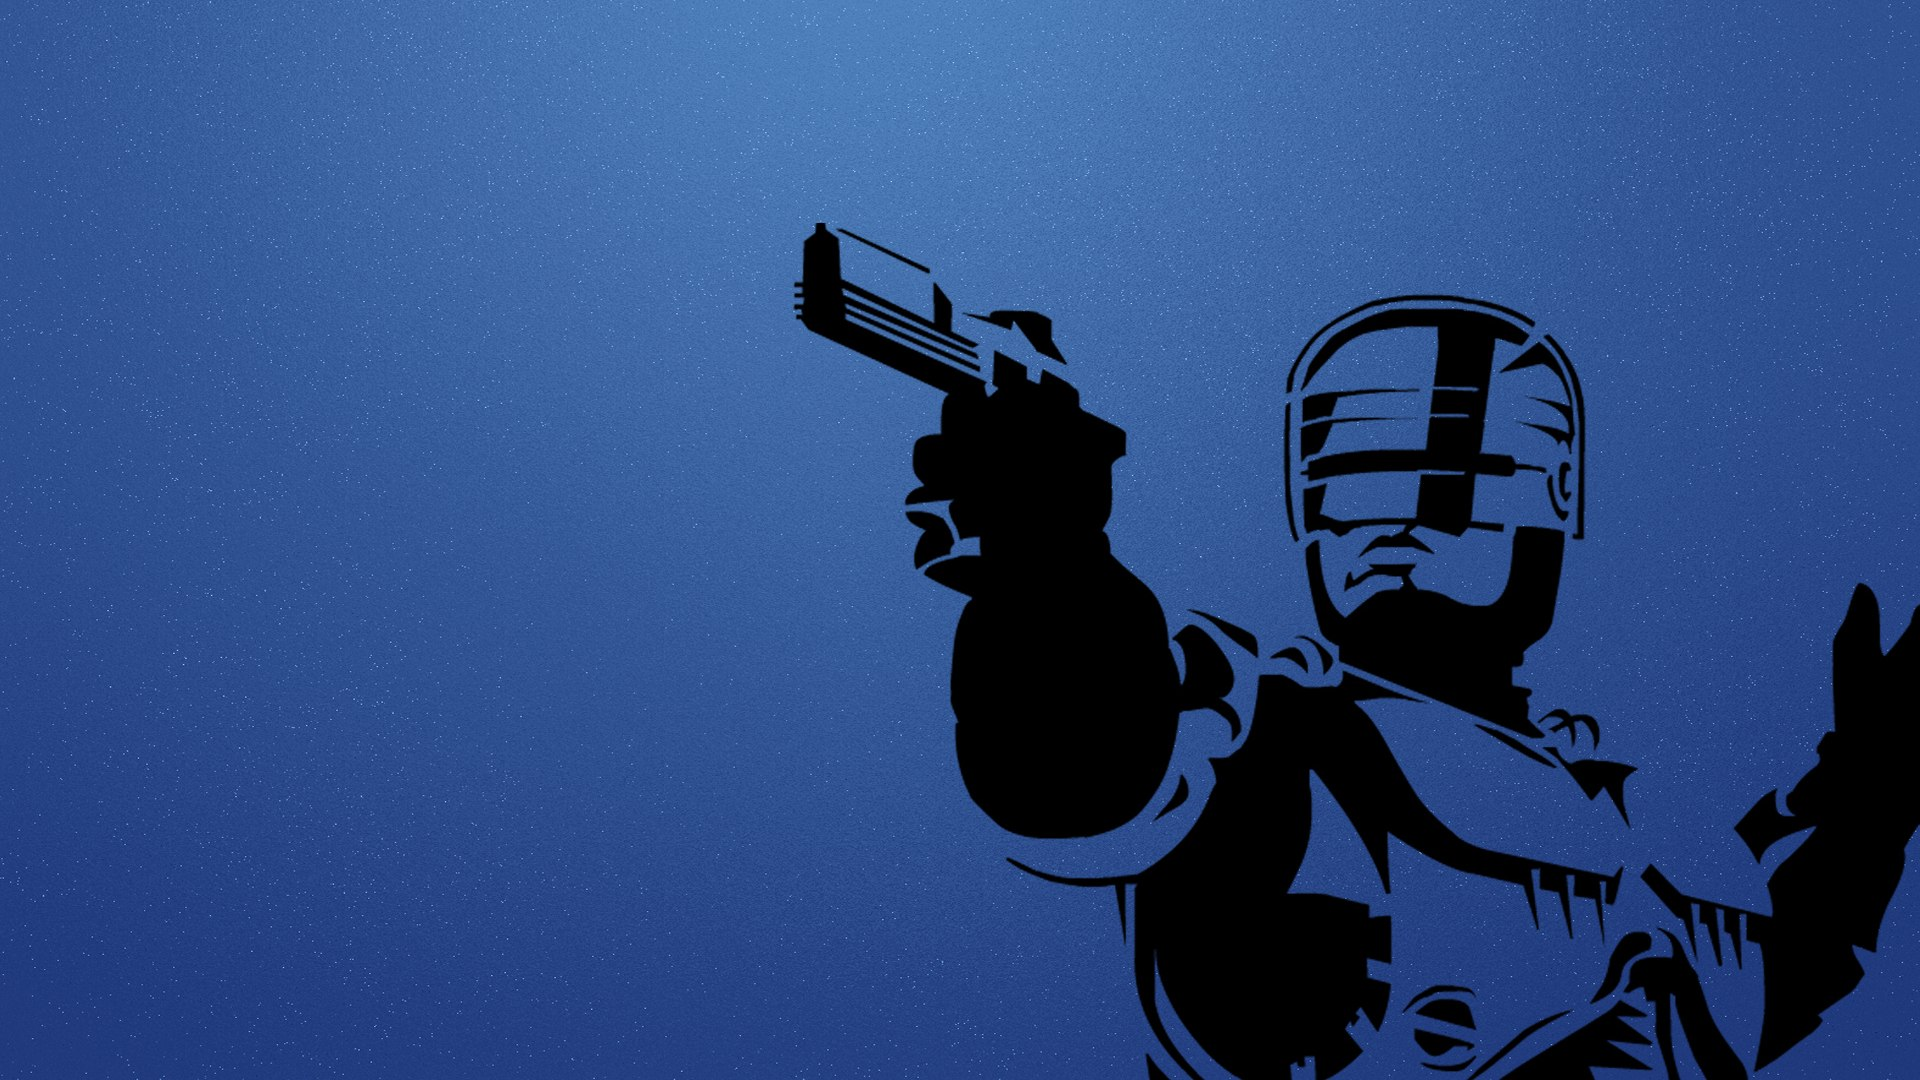 wallpaper-robocop